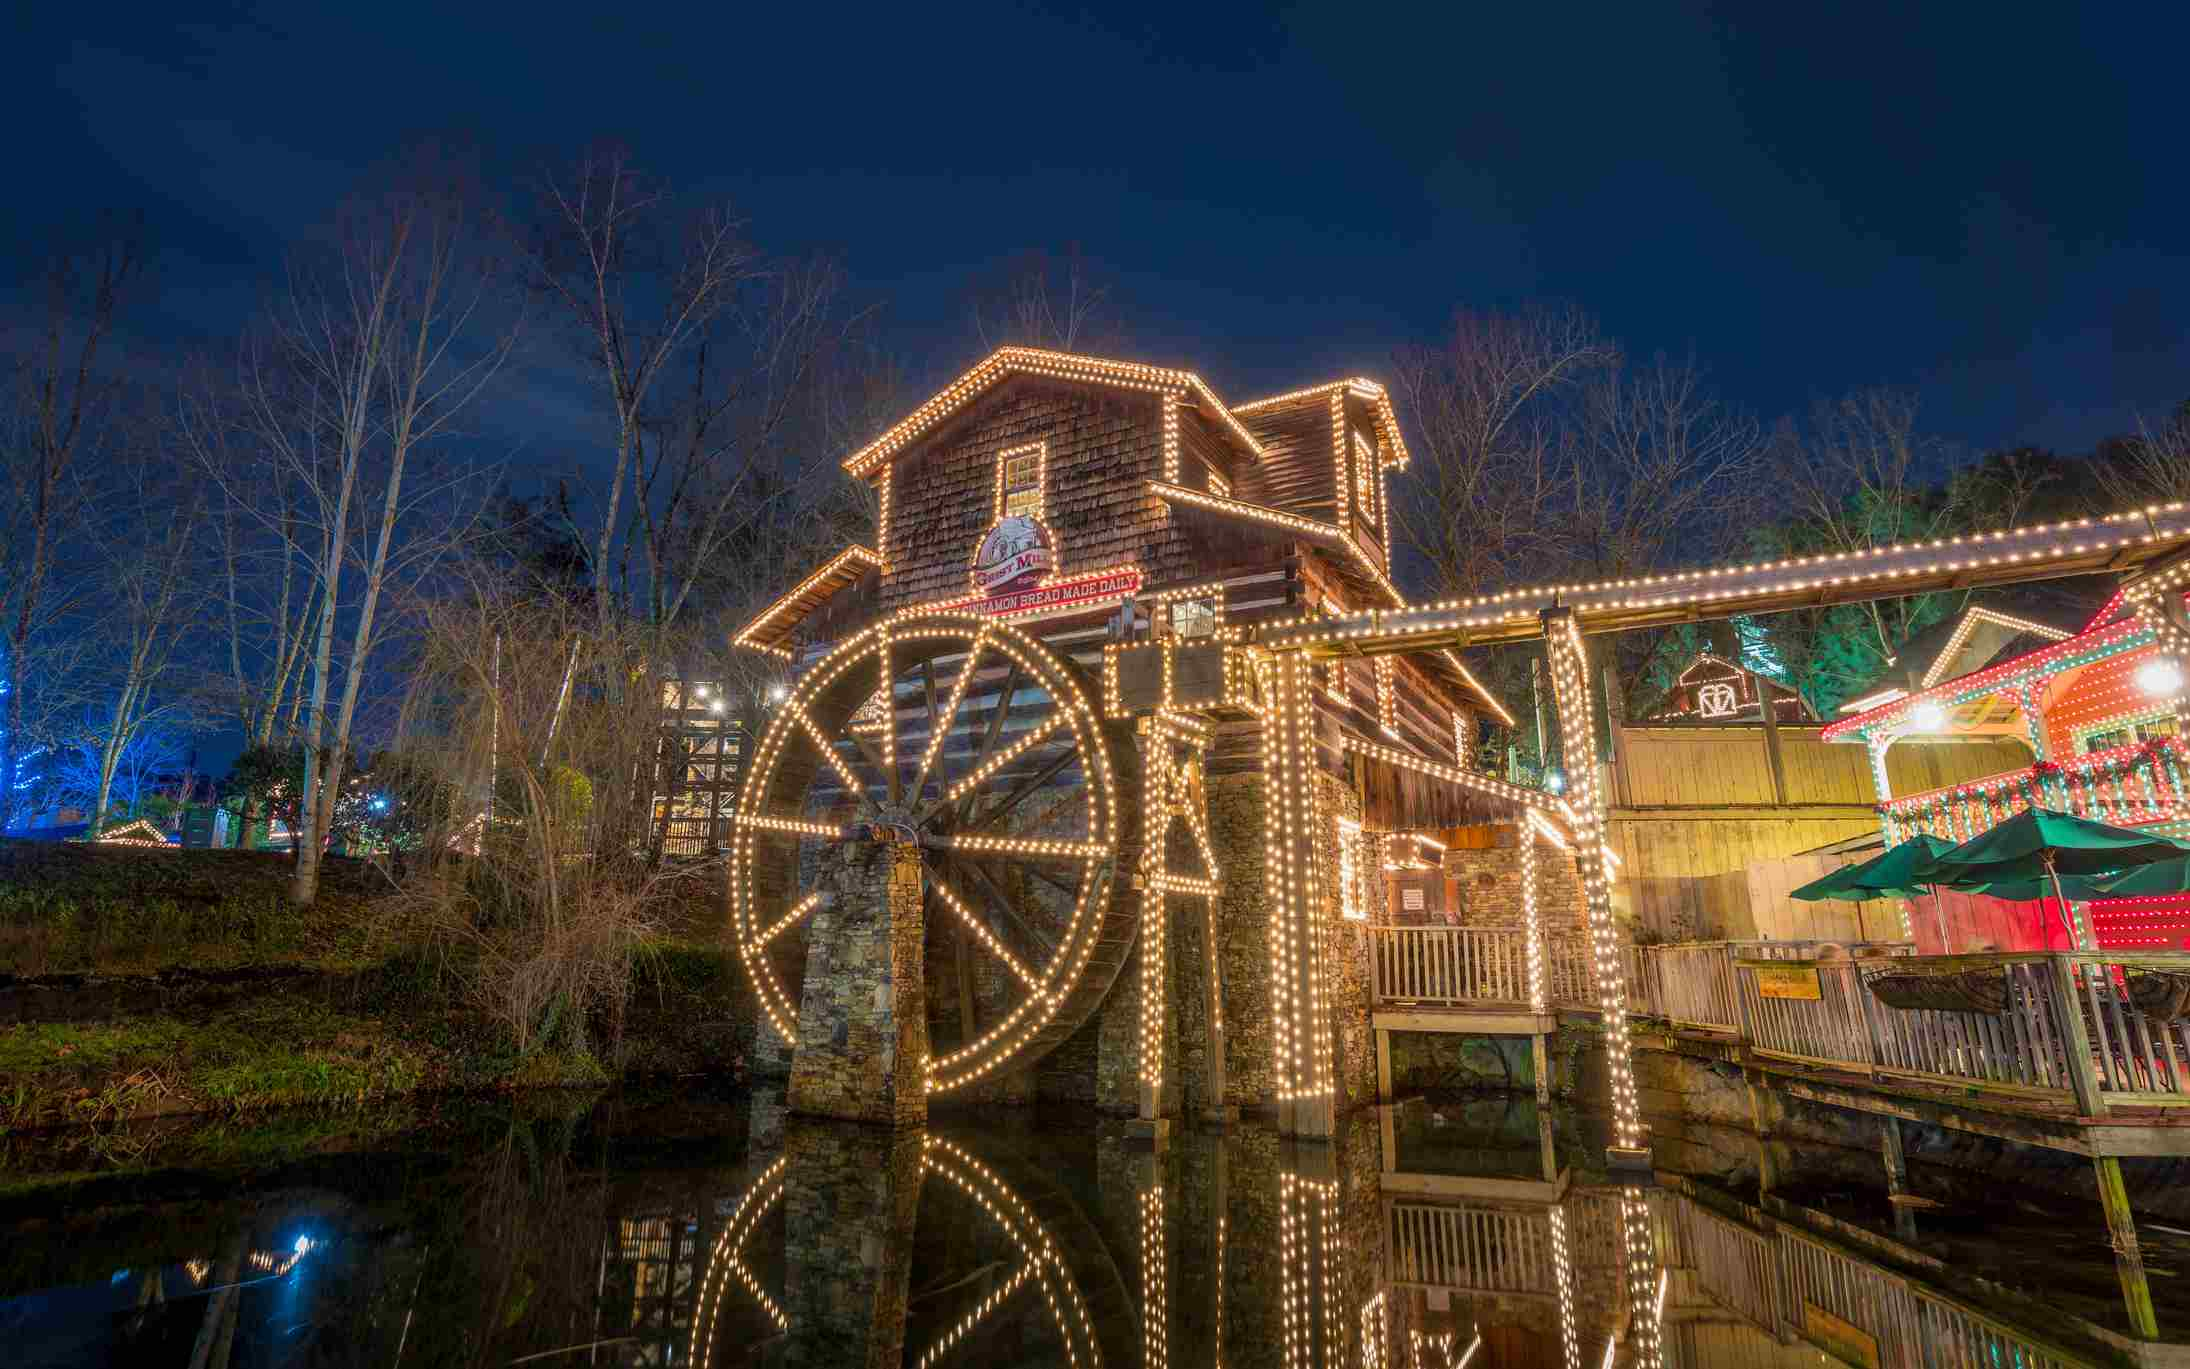 The Grist Mill at Dollywood a wooden watermill with a wheel with lights on it